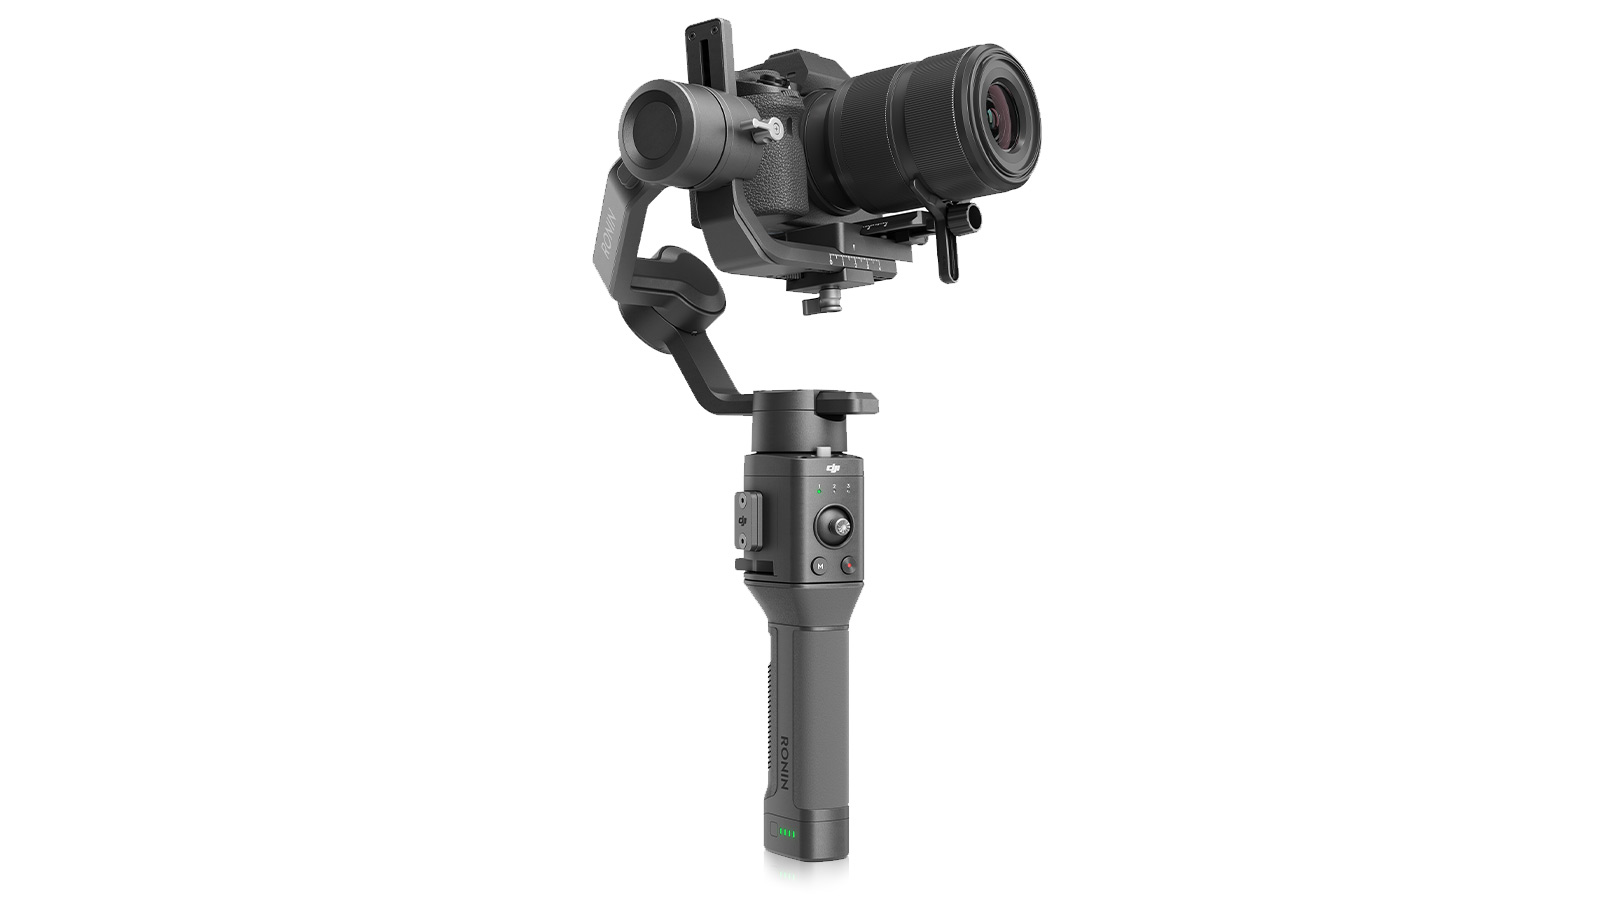 The DJI Ronin-SC Is a Lighter, Compact Mirrorless Camera Gimbal